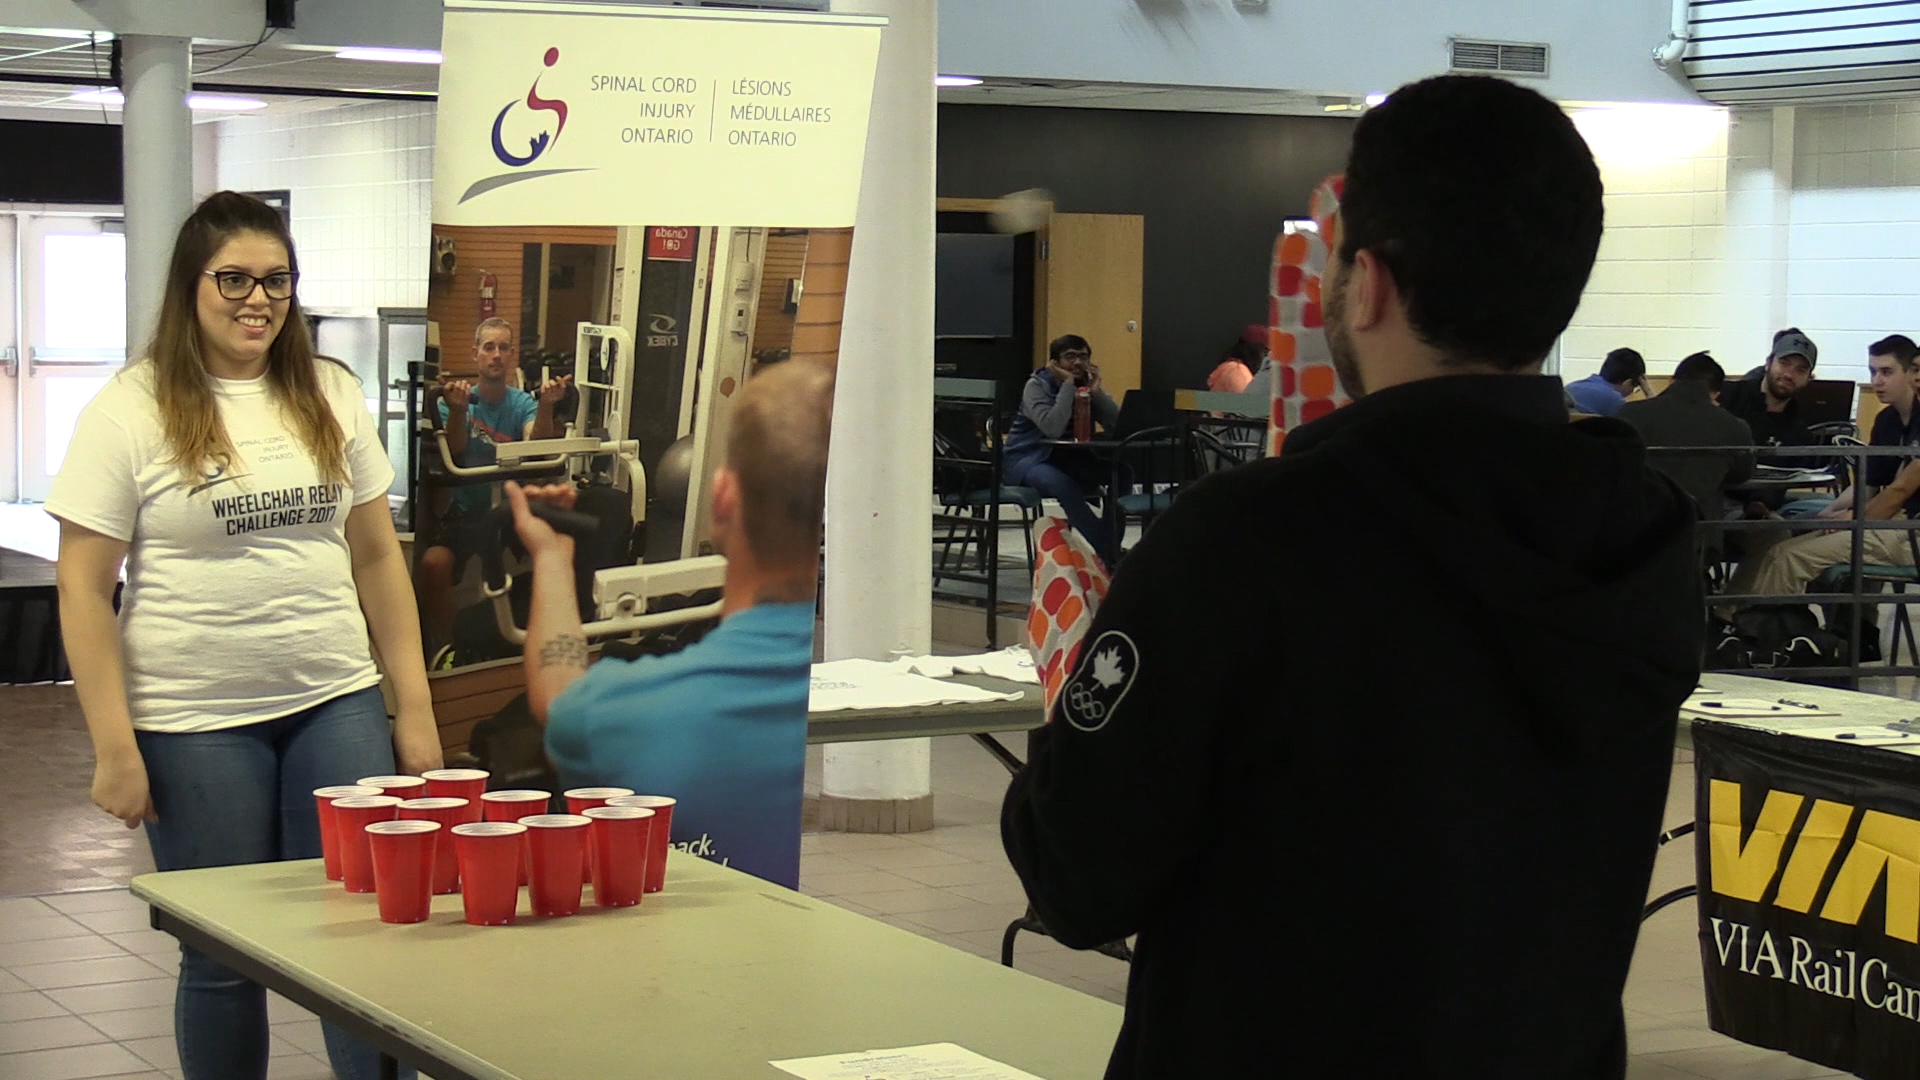 Cup pong raises awareness for spinal cord injuries